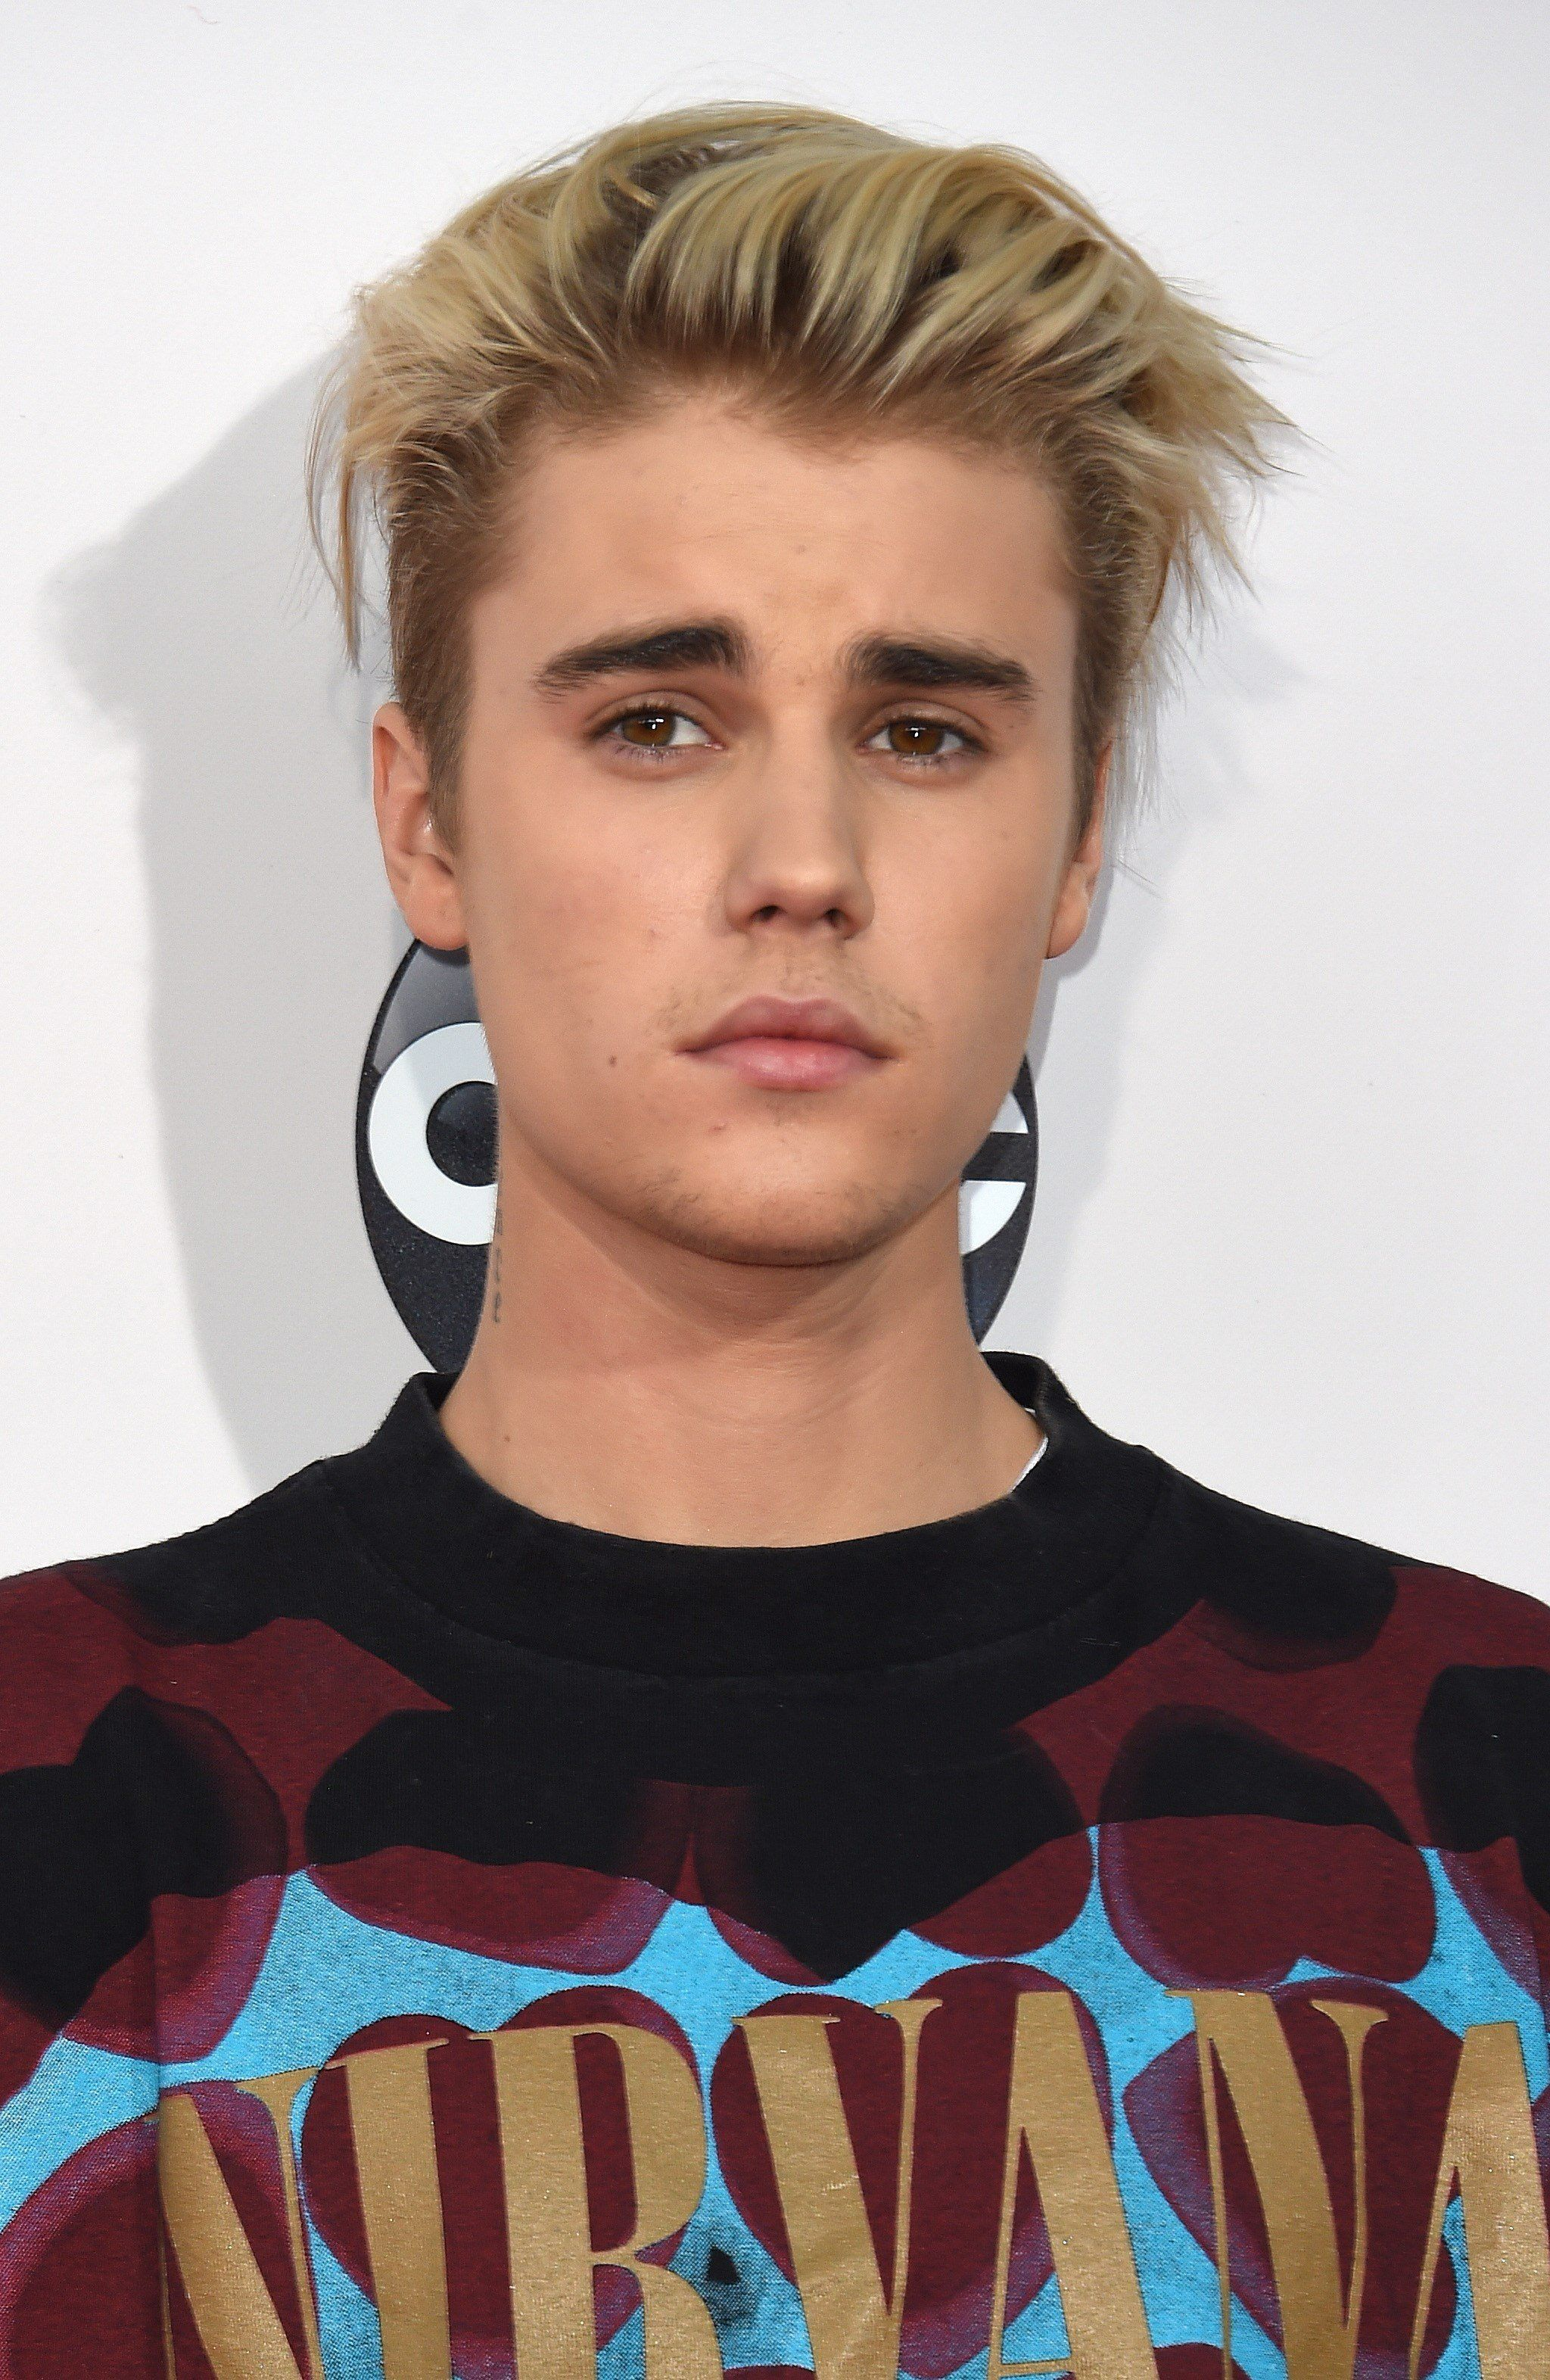 Recording artist Justin Beiber attends the 2015 American Music Awards at the Microsoft Theater at L.A. Live in Los Angeles, California, November 22, 2015.  AFP PHOTO / VALERIE MACON        (Photo credit should read VALERIE MACON/AFP/Getty Images)